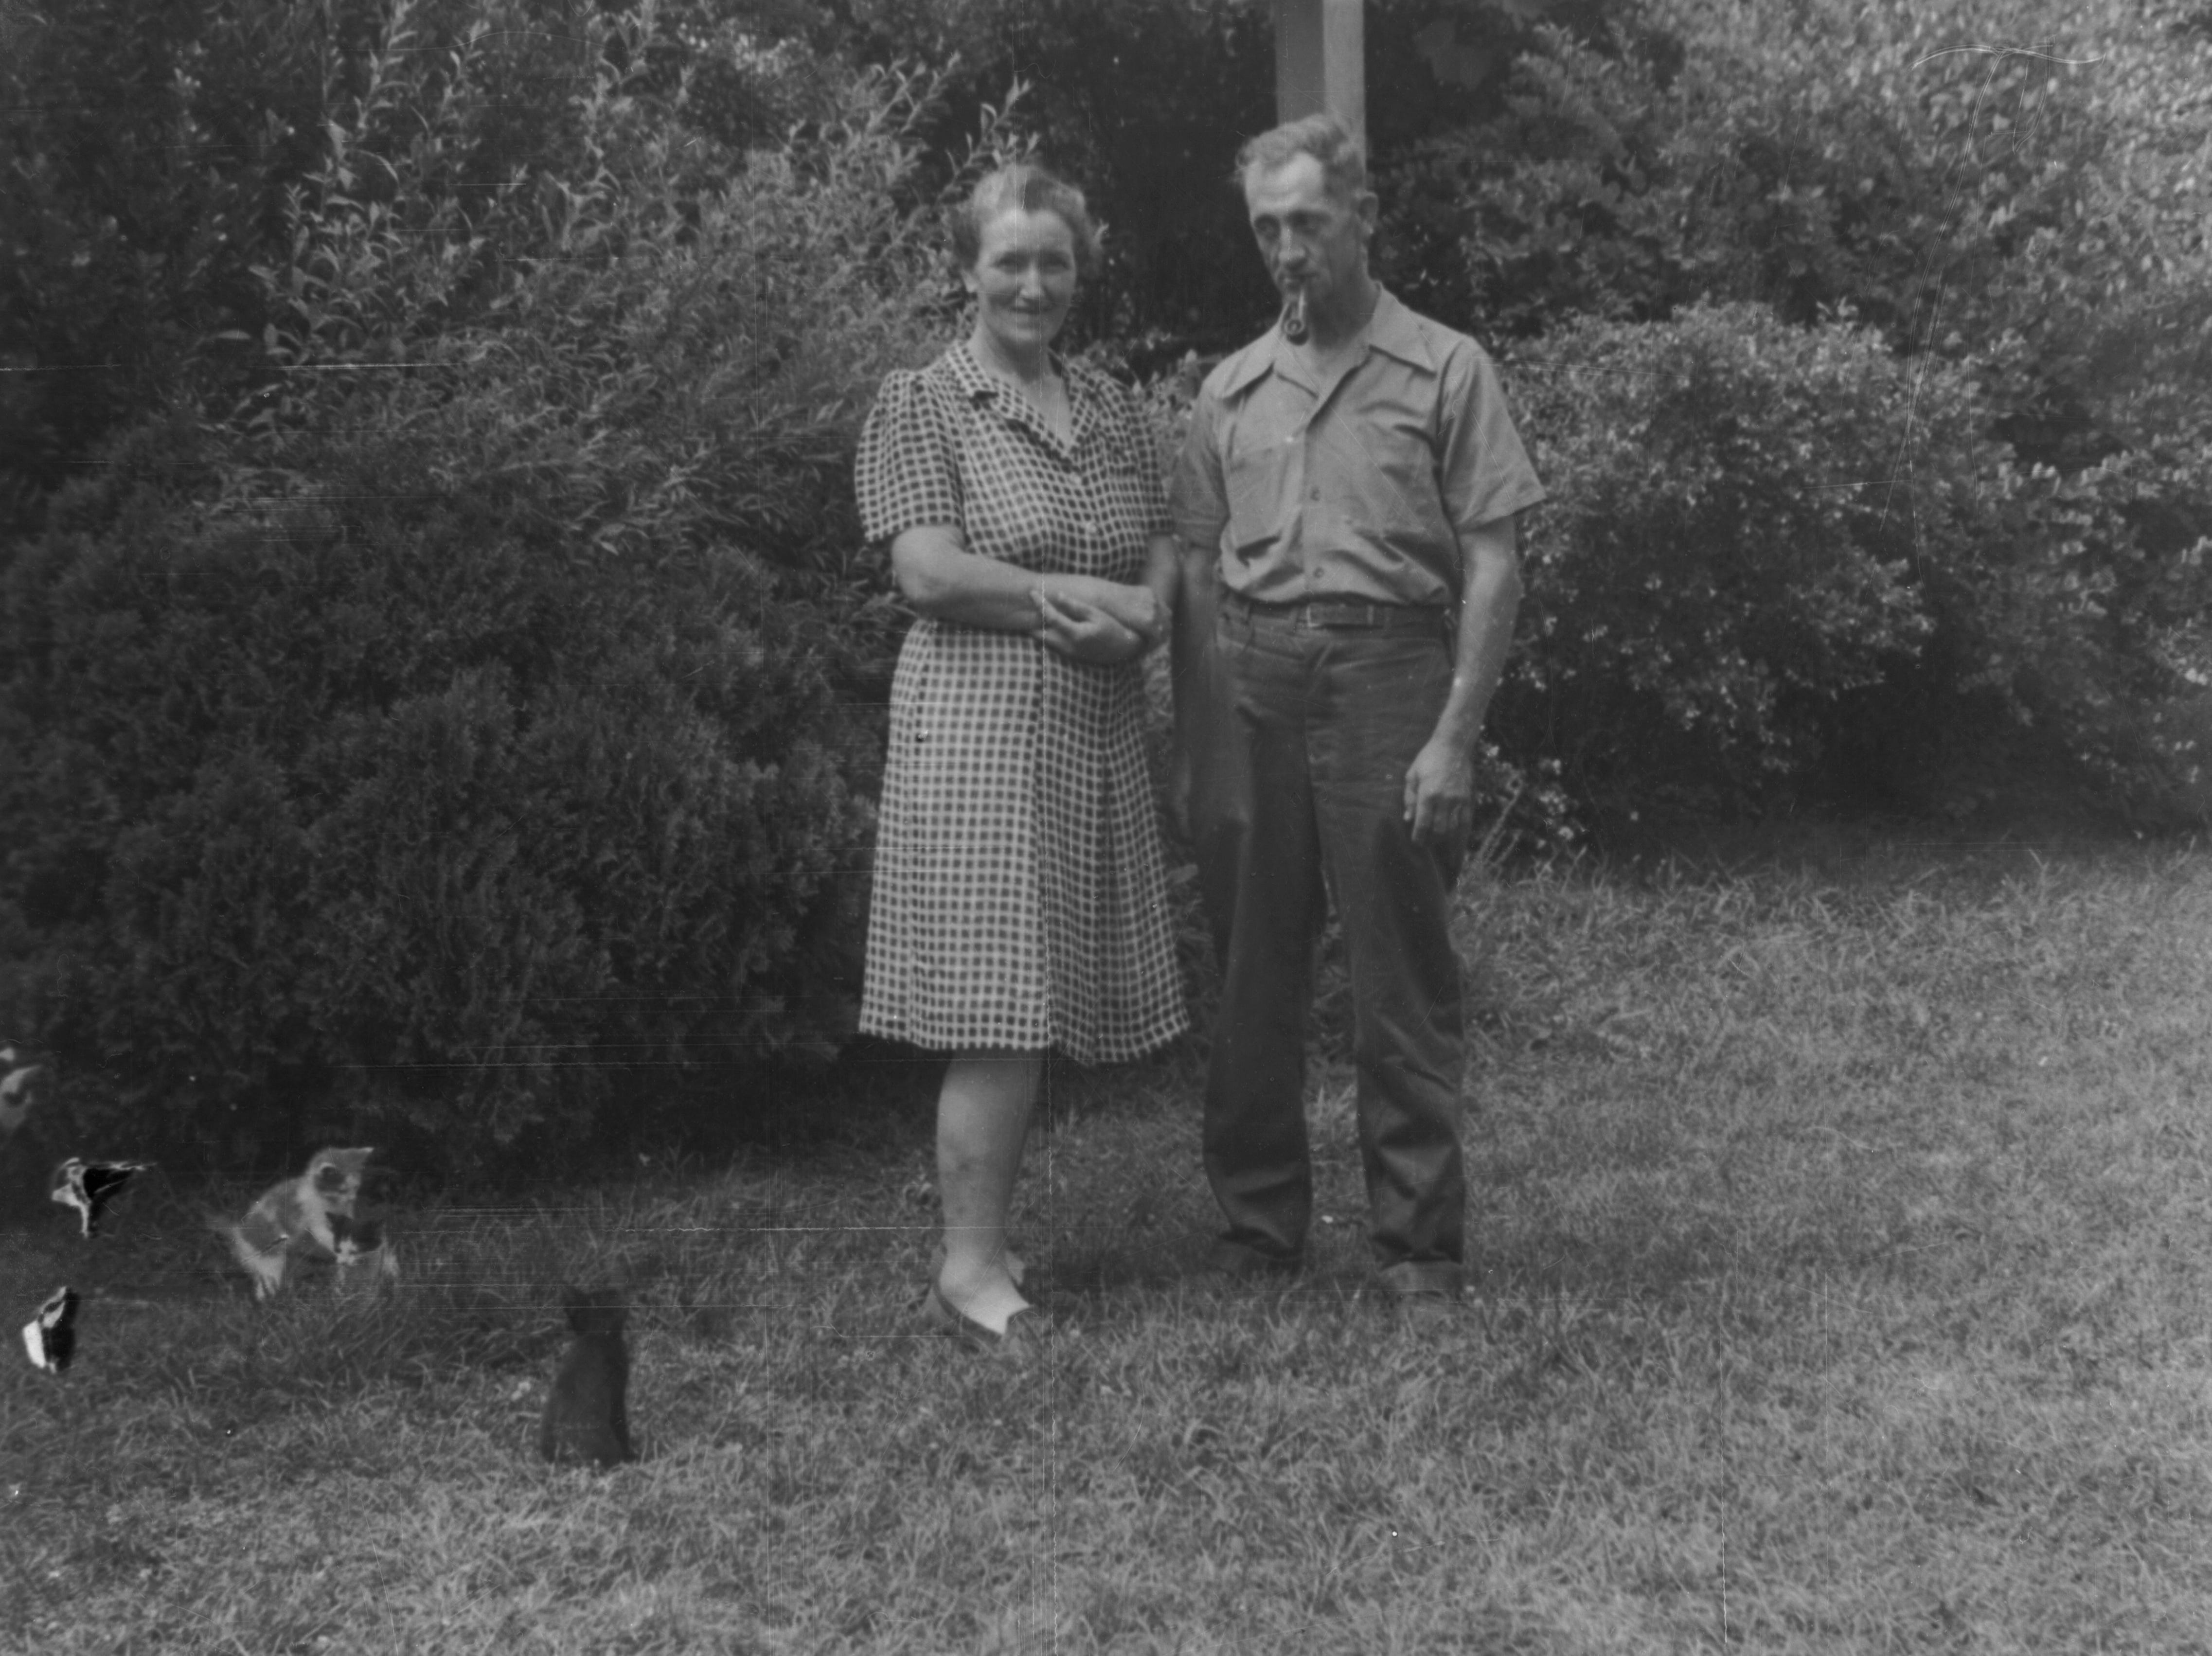 Milton and Ruby LeQuire in the 1940s. In 1929 the U.S. government paid the LeQuires $9,000 for their Cades Cove land which became part of the Great Smoky Mountains National Park.